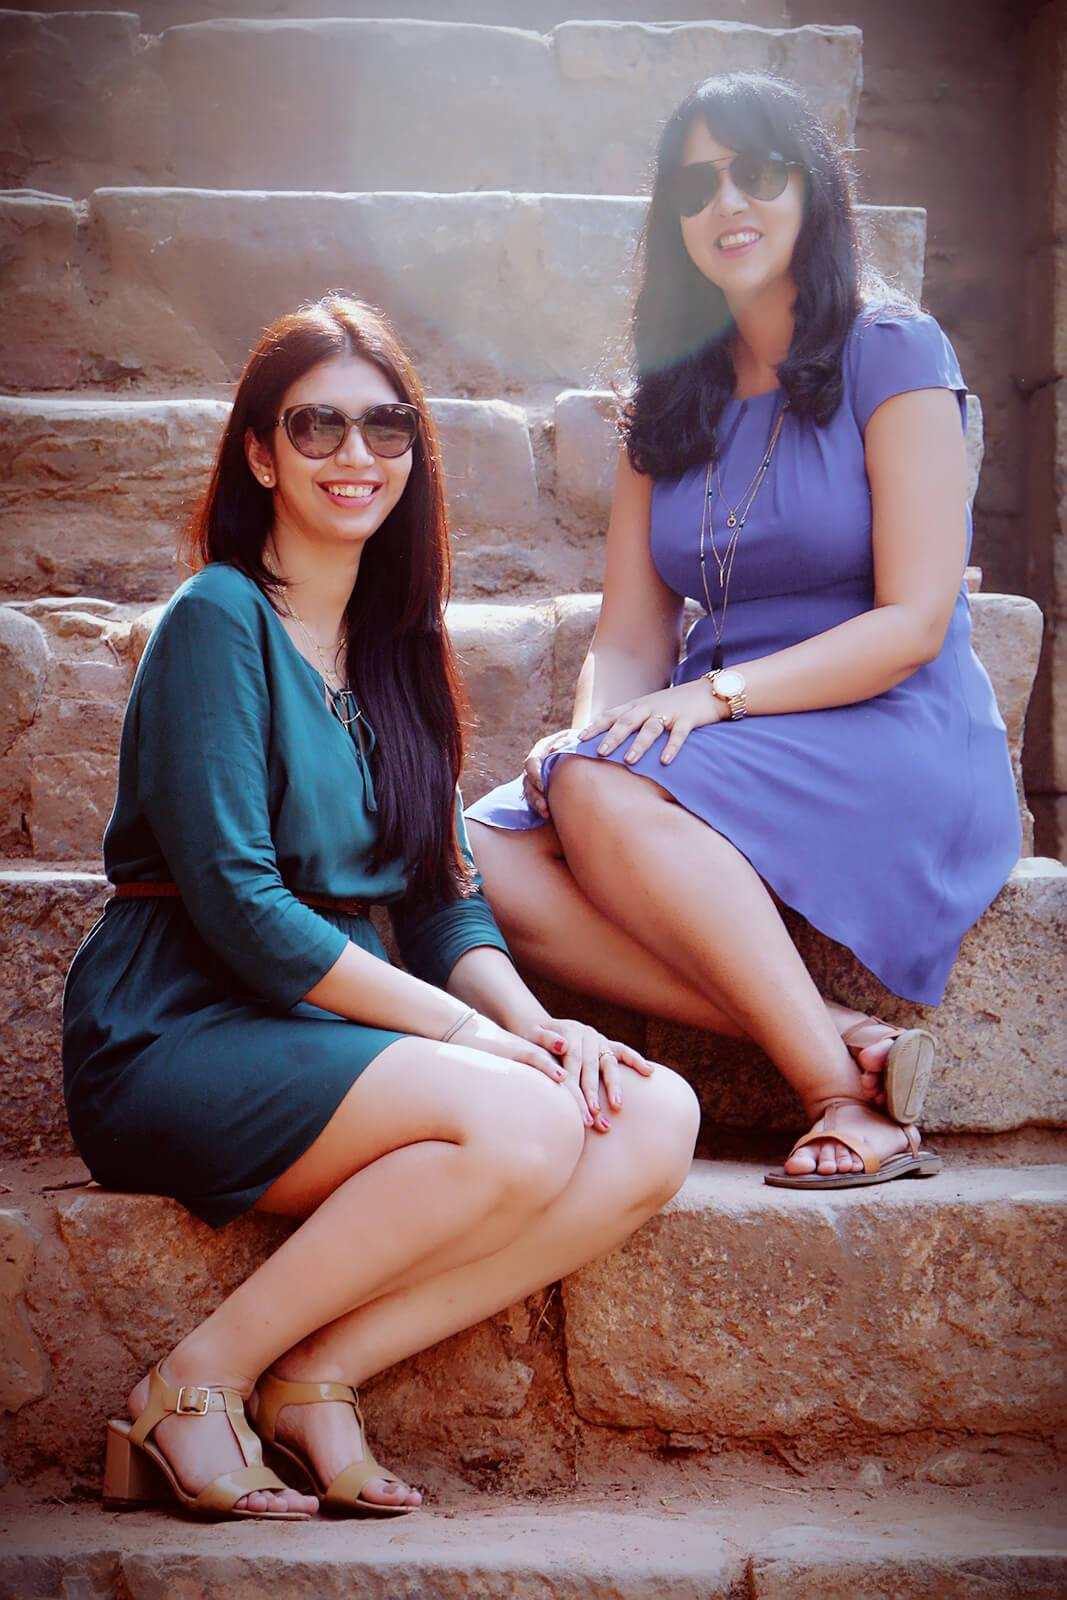 One year later: sister bloggers disclose what it takes to work from India and Switzerland.  Read full story here : http://buff.ly/2tIWE8X  #beauty #beautyblog #beautyblogger #lifestyle #lifestyleblog #lifestyleblogger #swissblog #swissblogger #roposo #roposolove #roposofollow #follow #indianblogger #delhibloggergirl